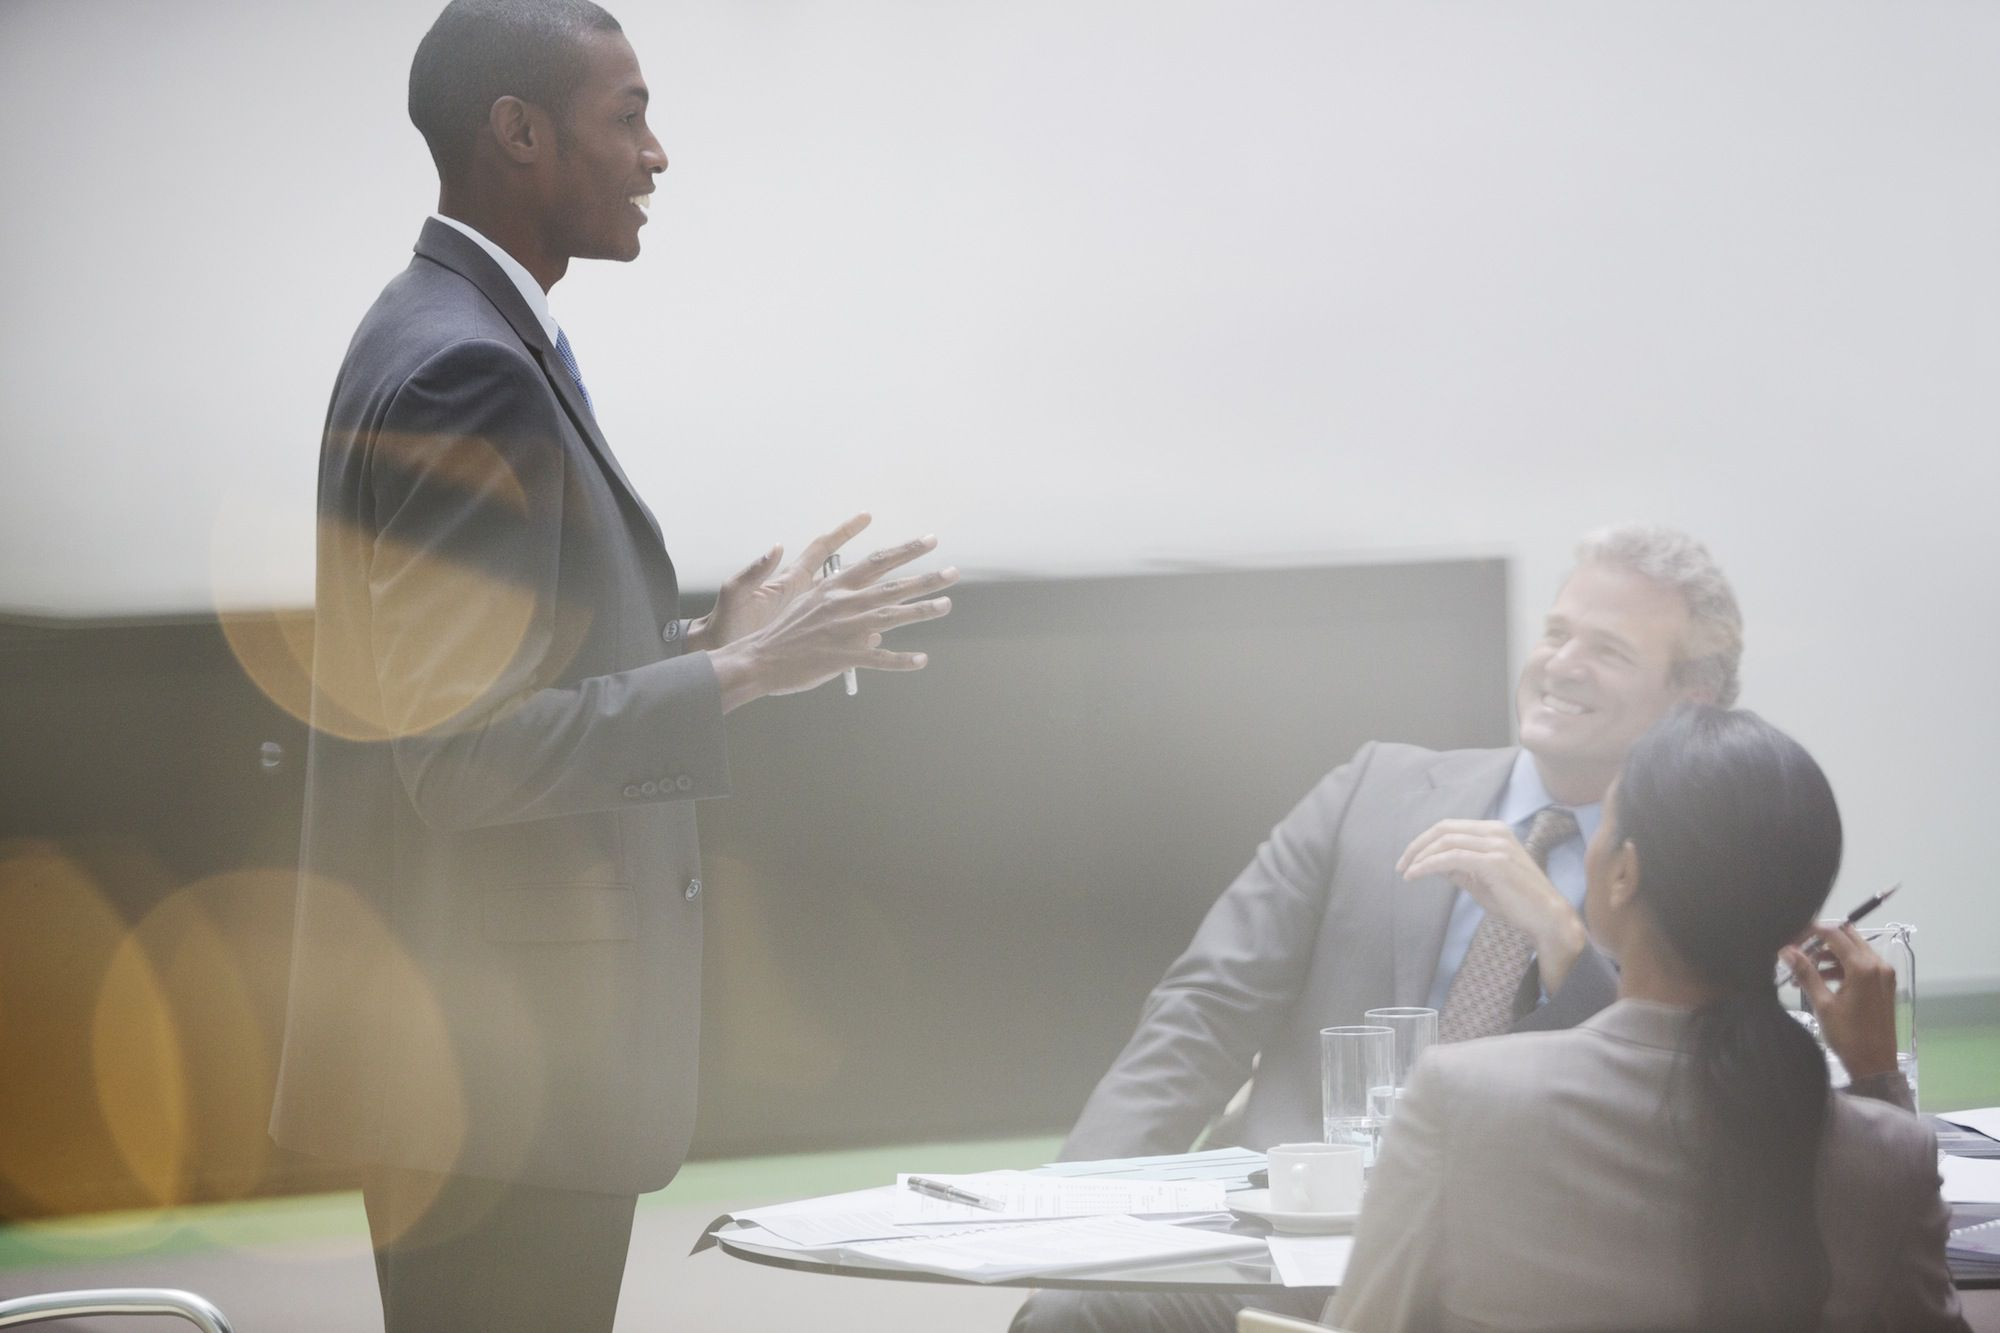 Gesturing businessman leading meeting in conference room